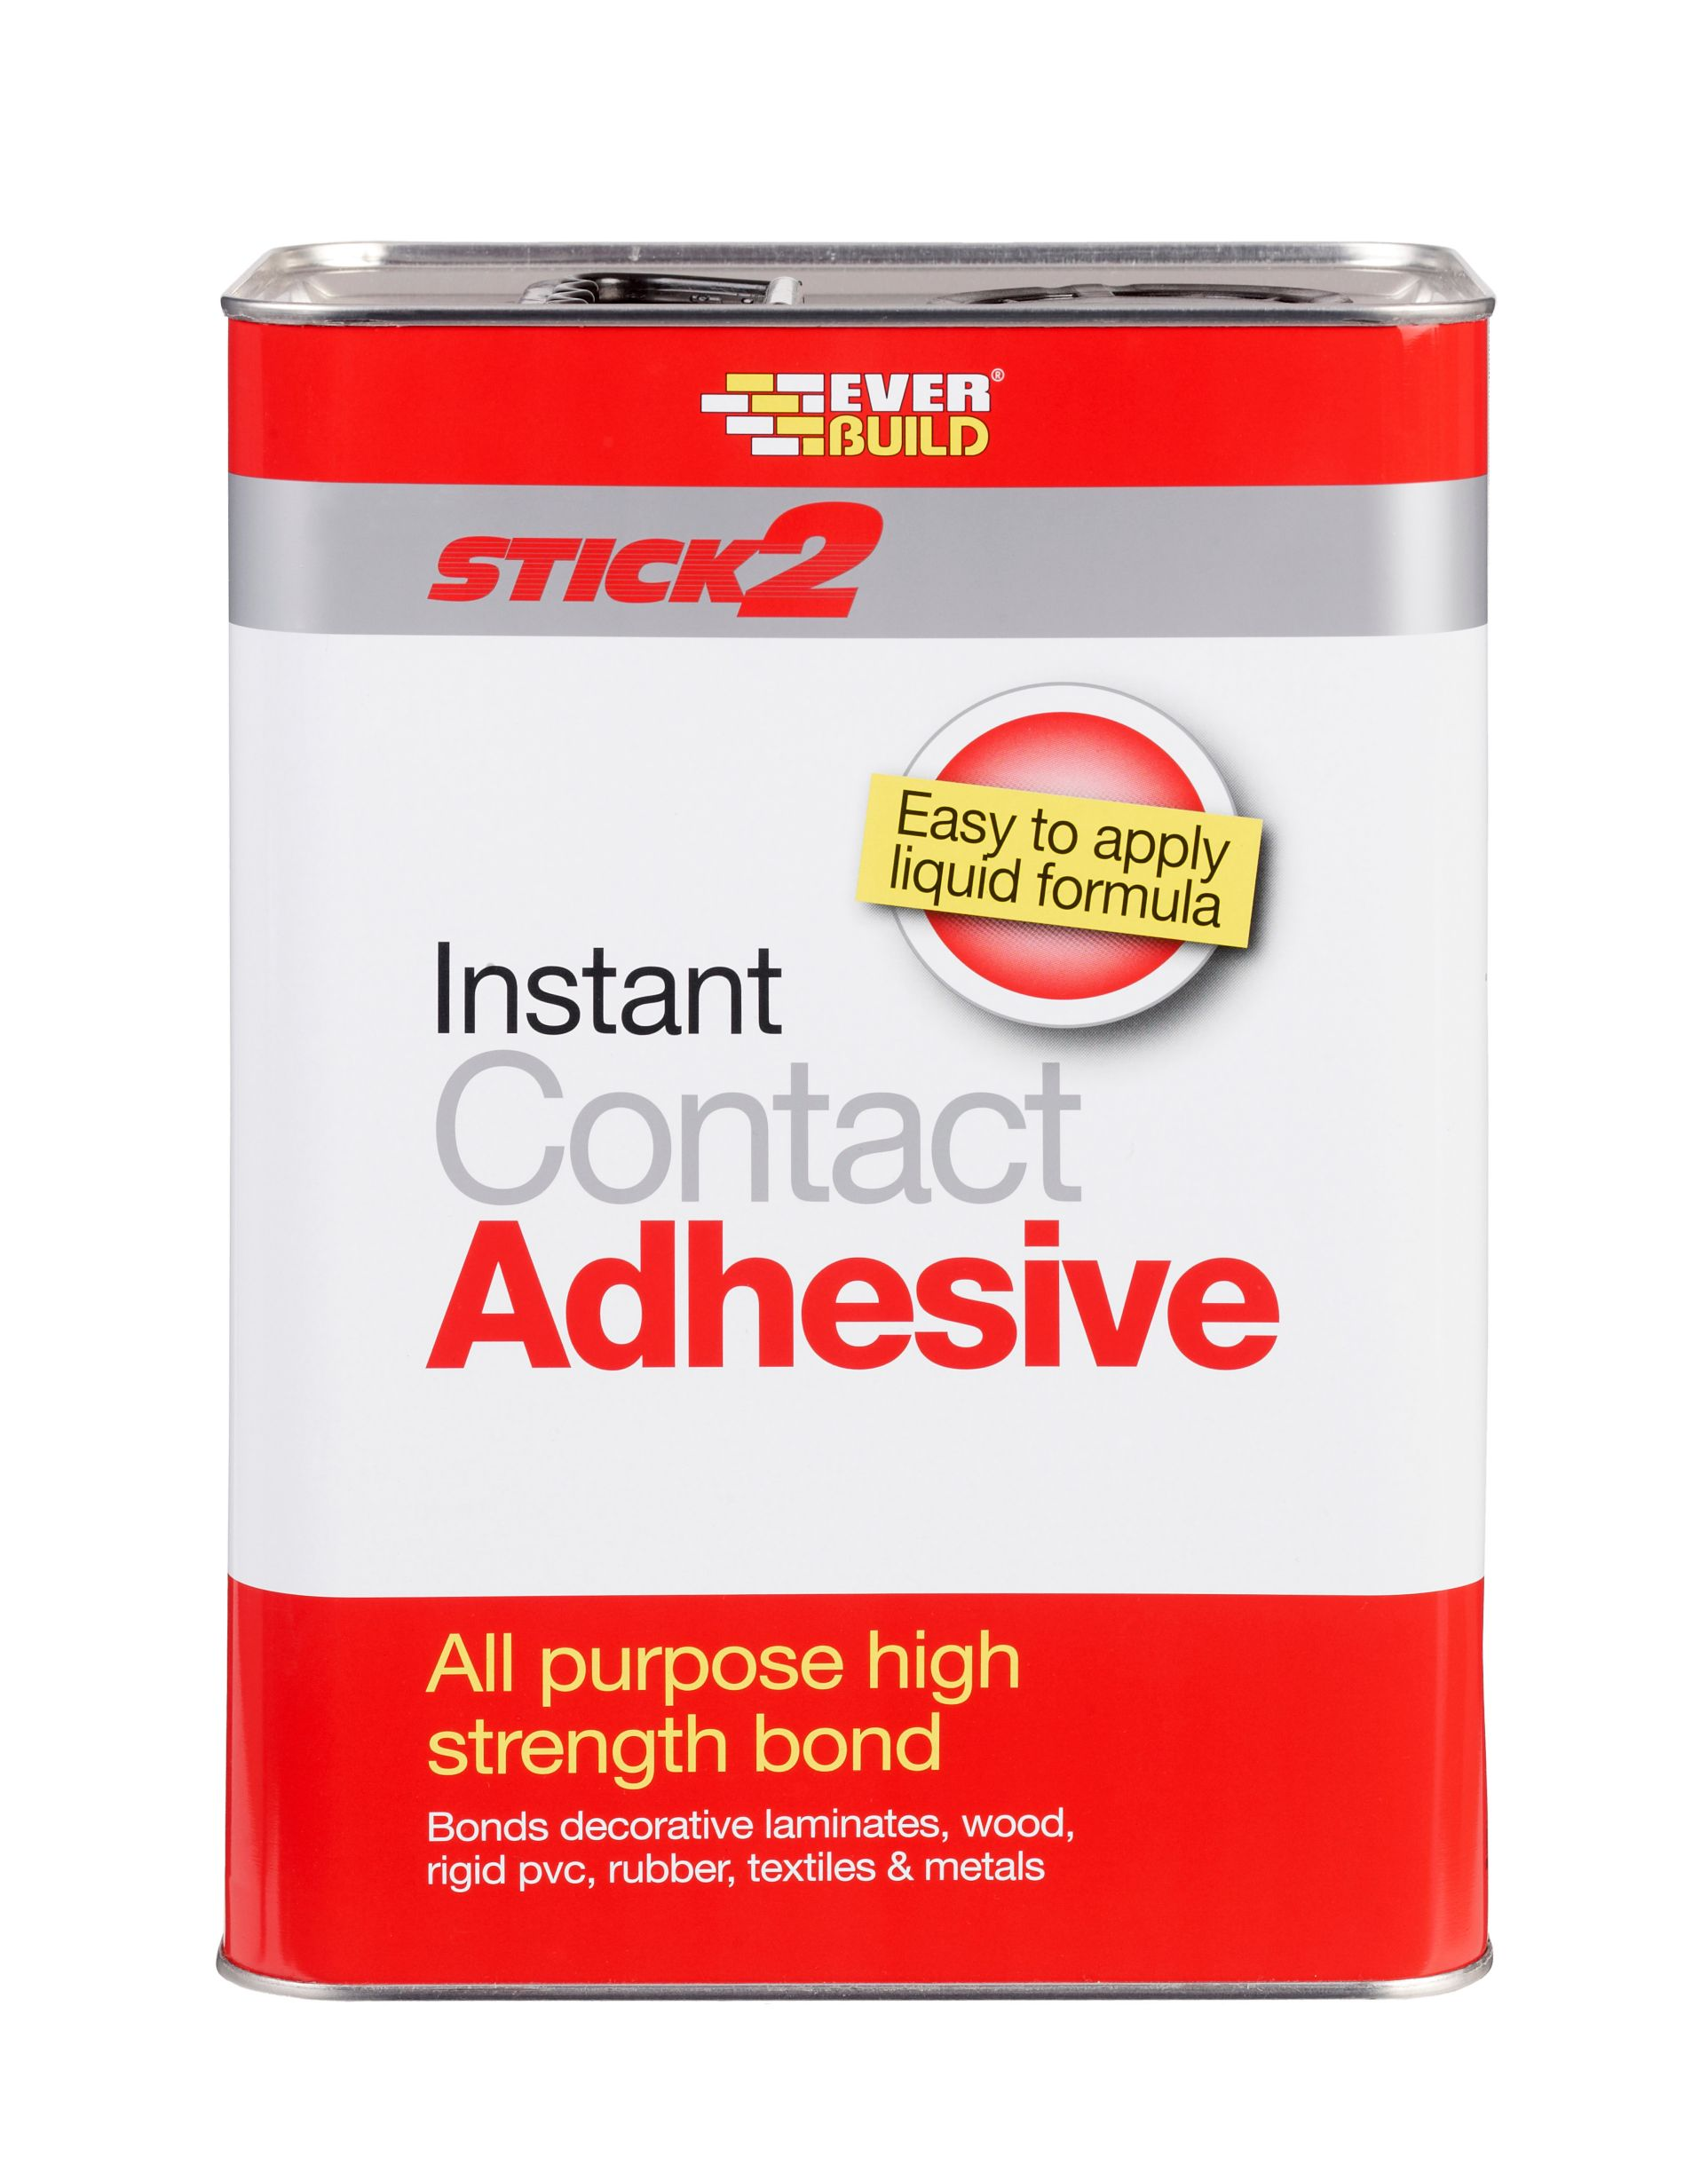 STICK2 ALL PURPOSE INSTANT CONTACT ADHESIVE 5L